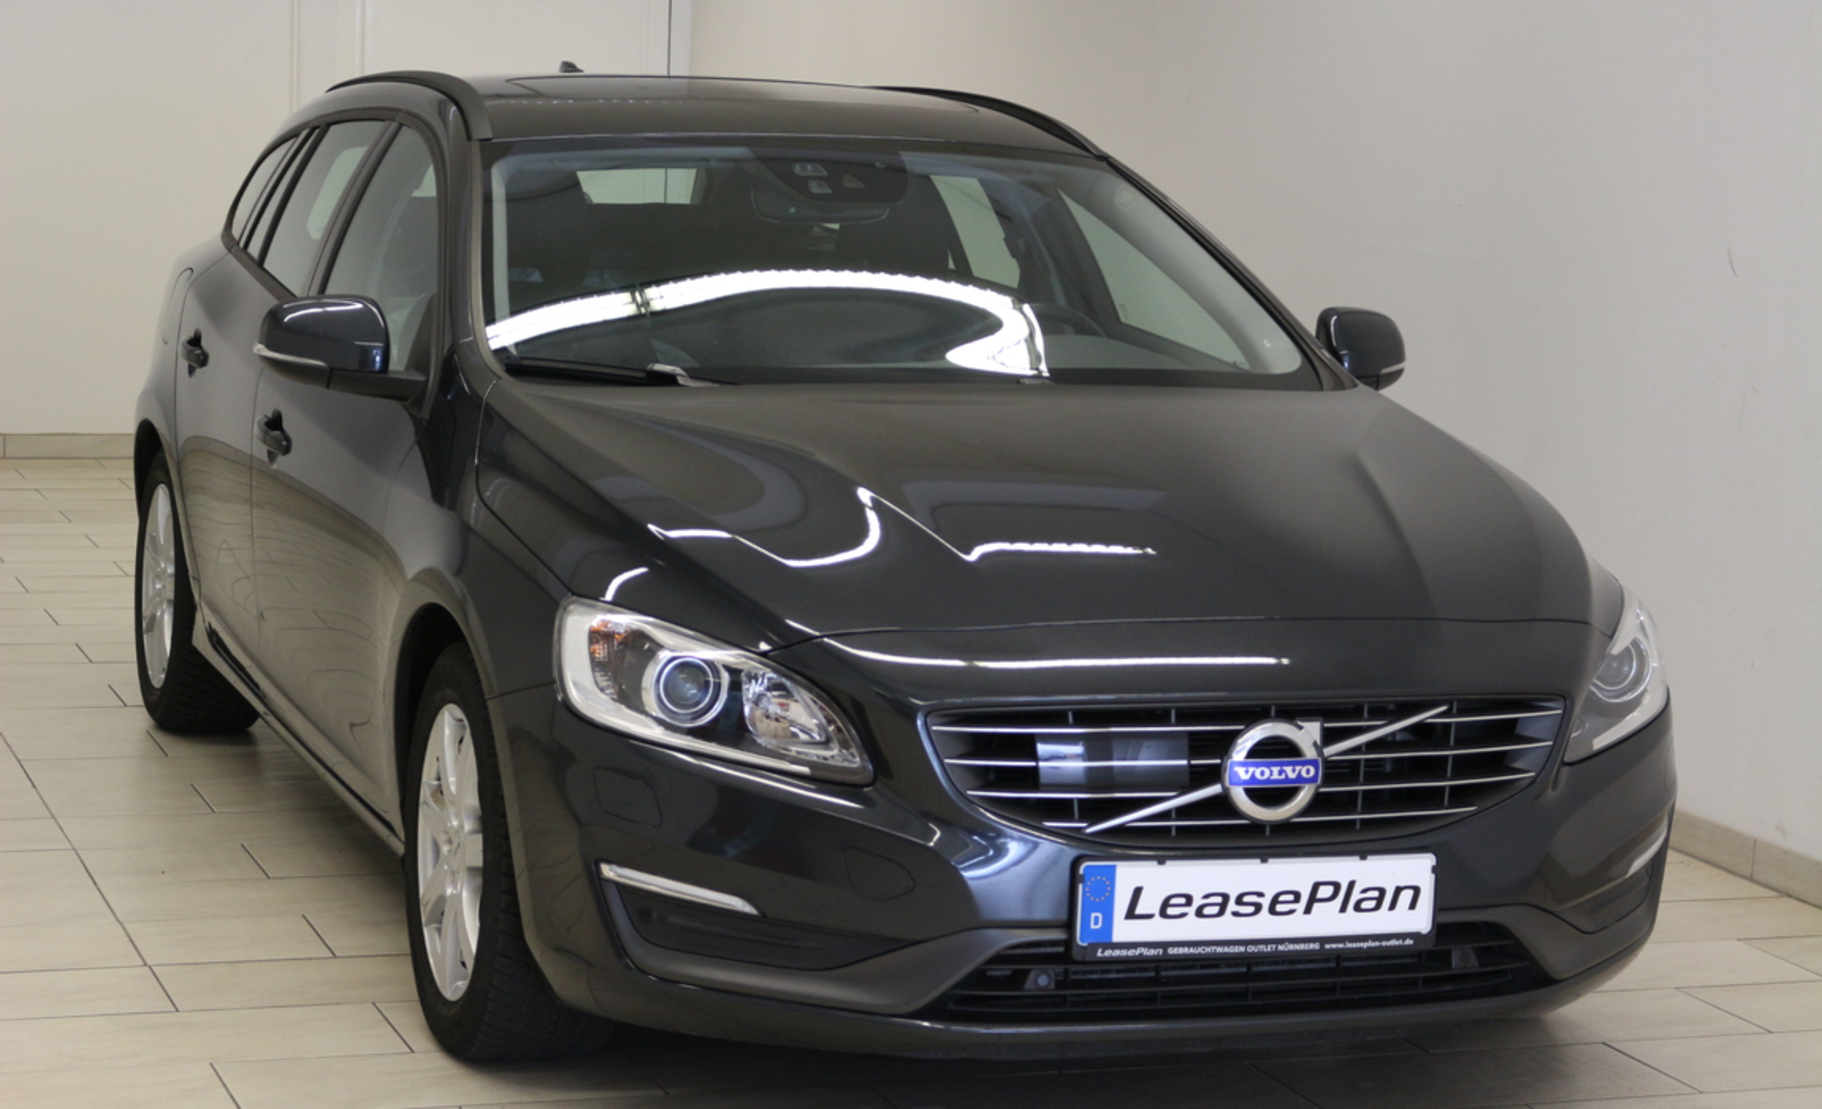 Volvo V60 D4 Geartronic, Kinetic (555041) detail1